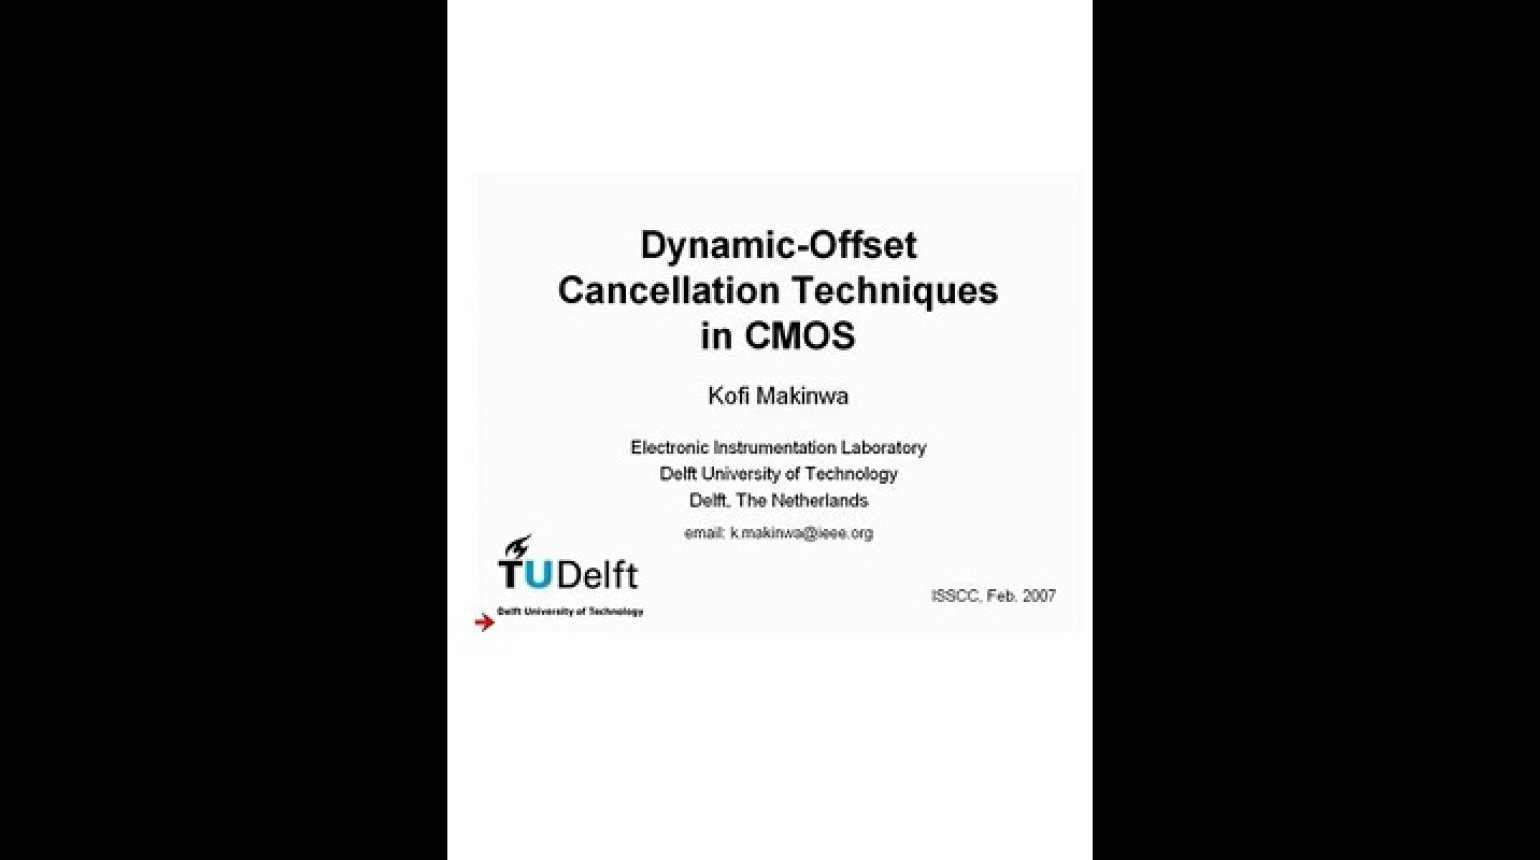 Dynamic-Offset Cancellation Techniques in CMOS Video